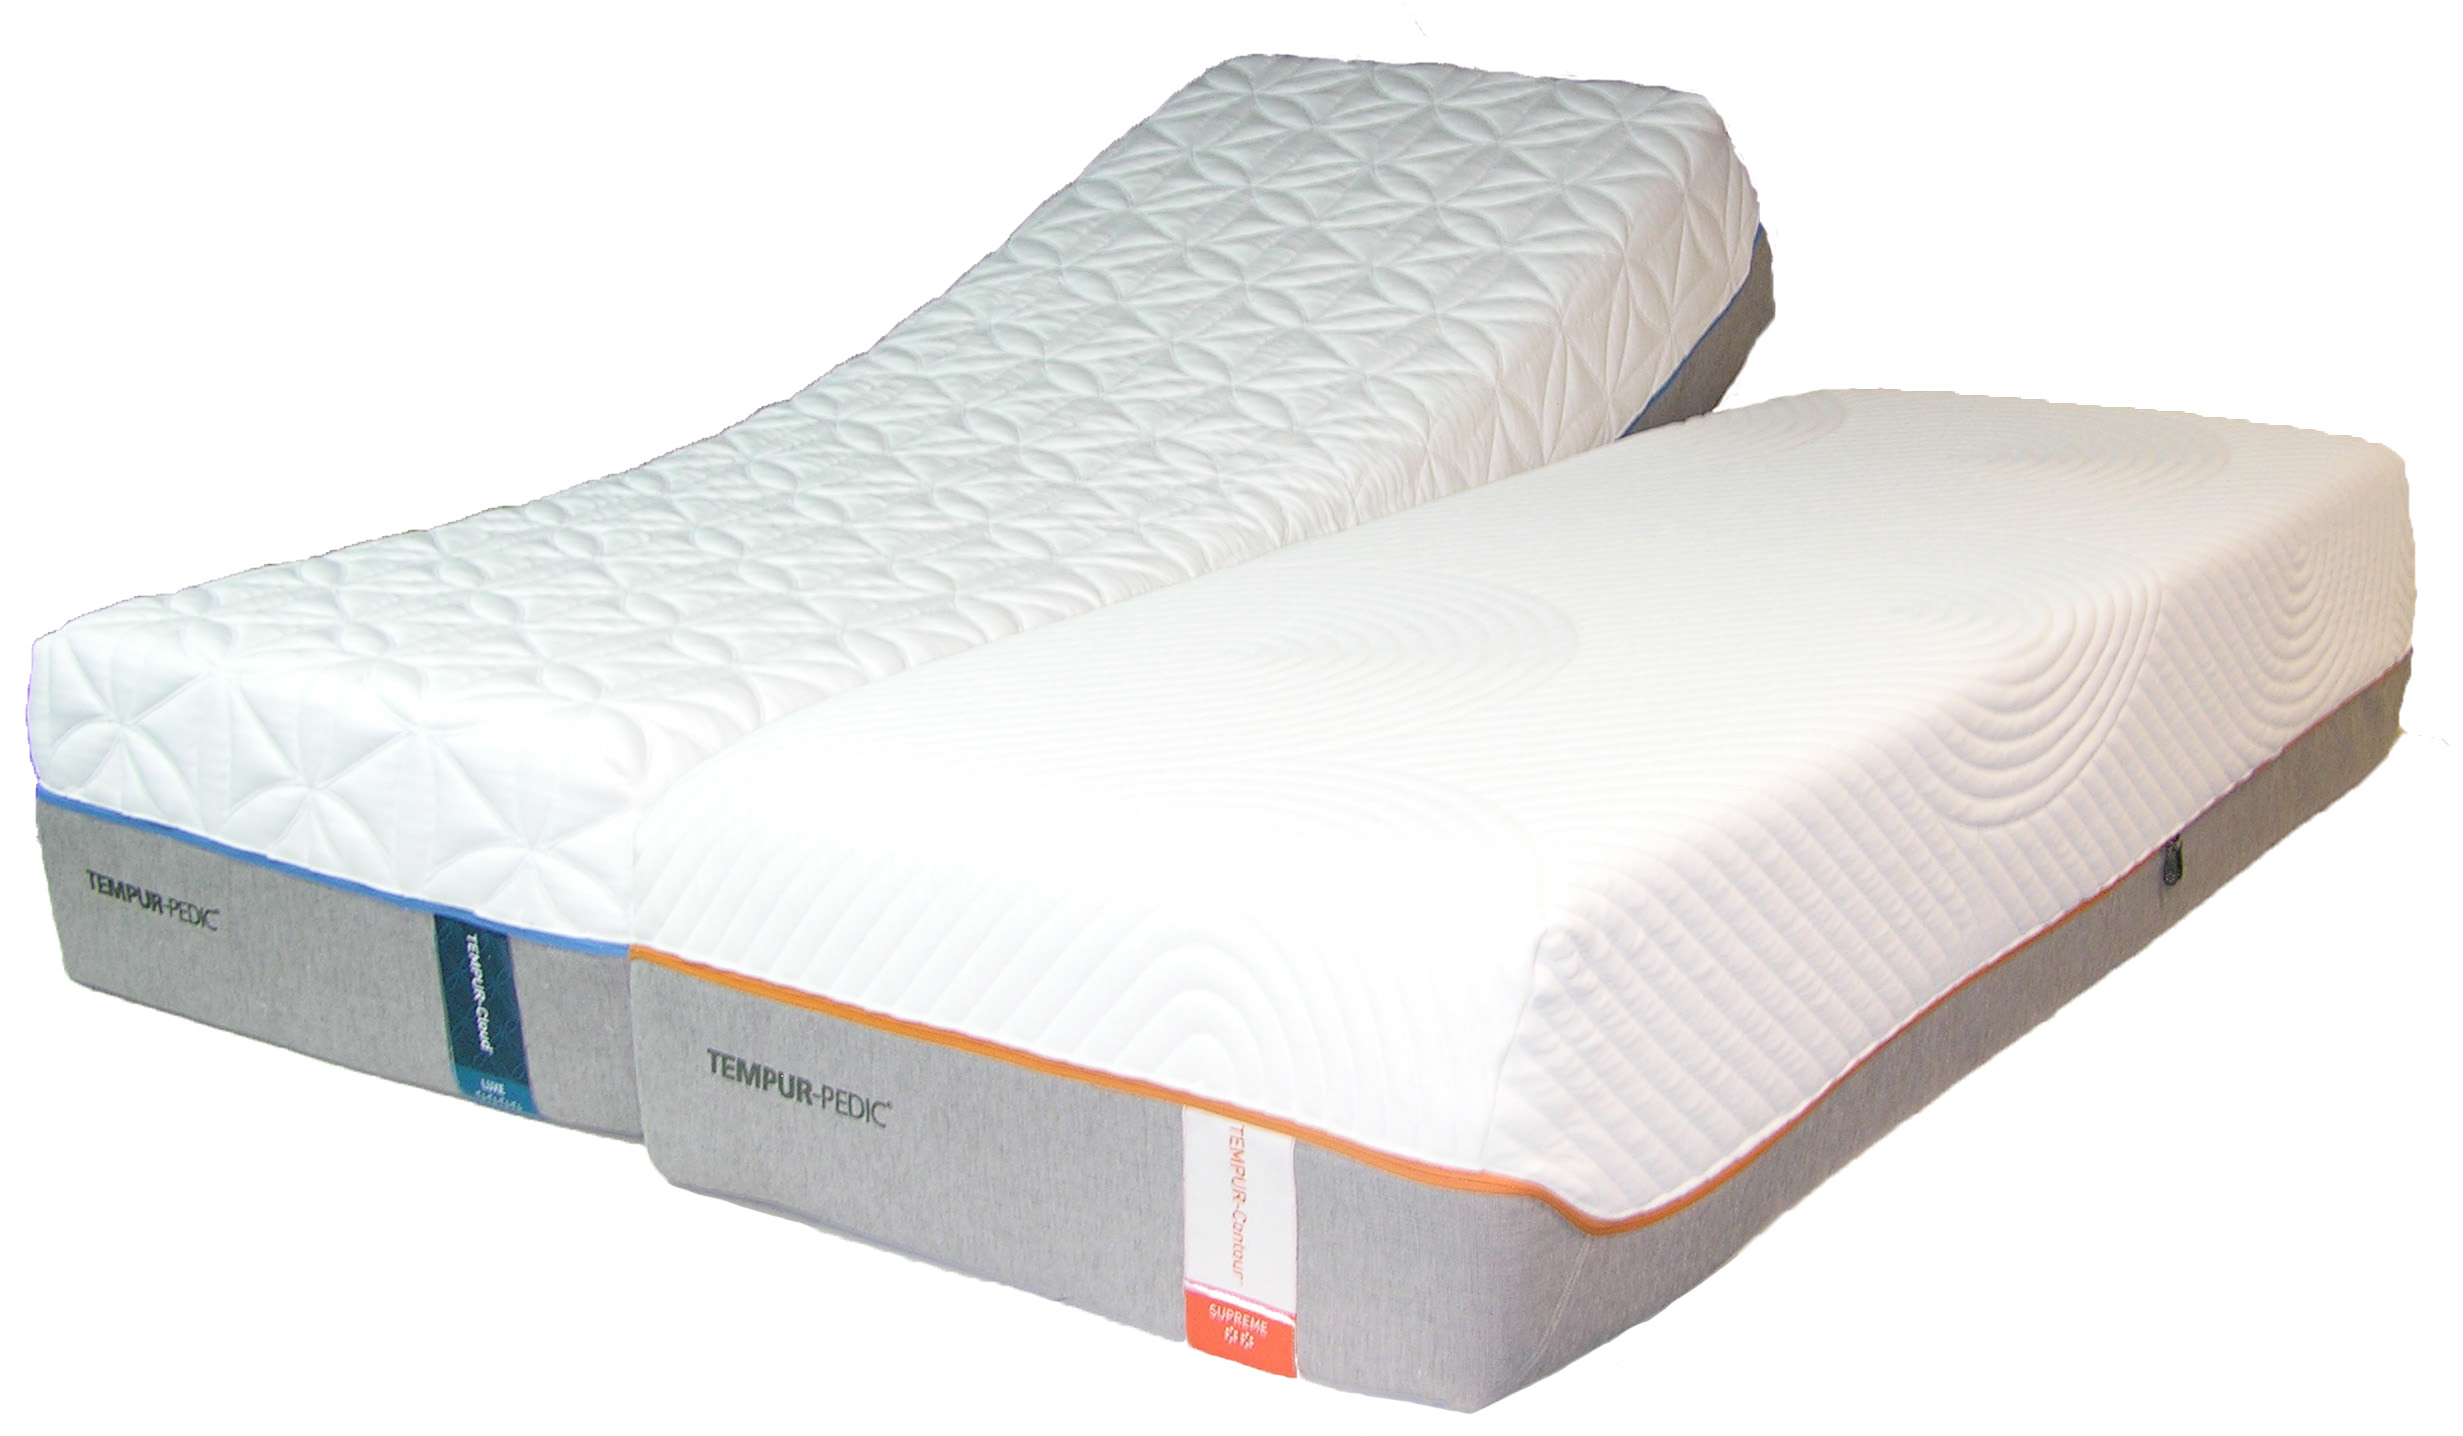 Adjustable Tempur Pedic Mattress Adjustable Bed Temperpedic Ca Mattress Tempurpedic Tempur